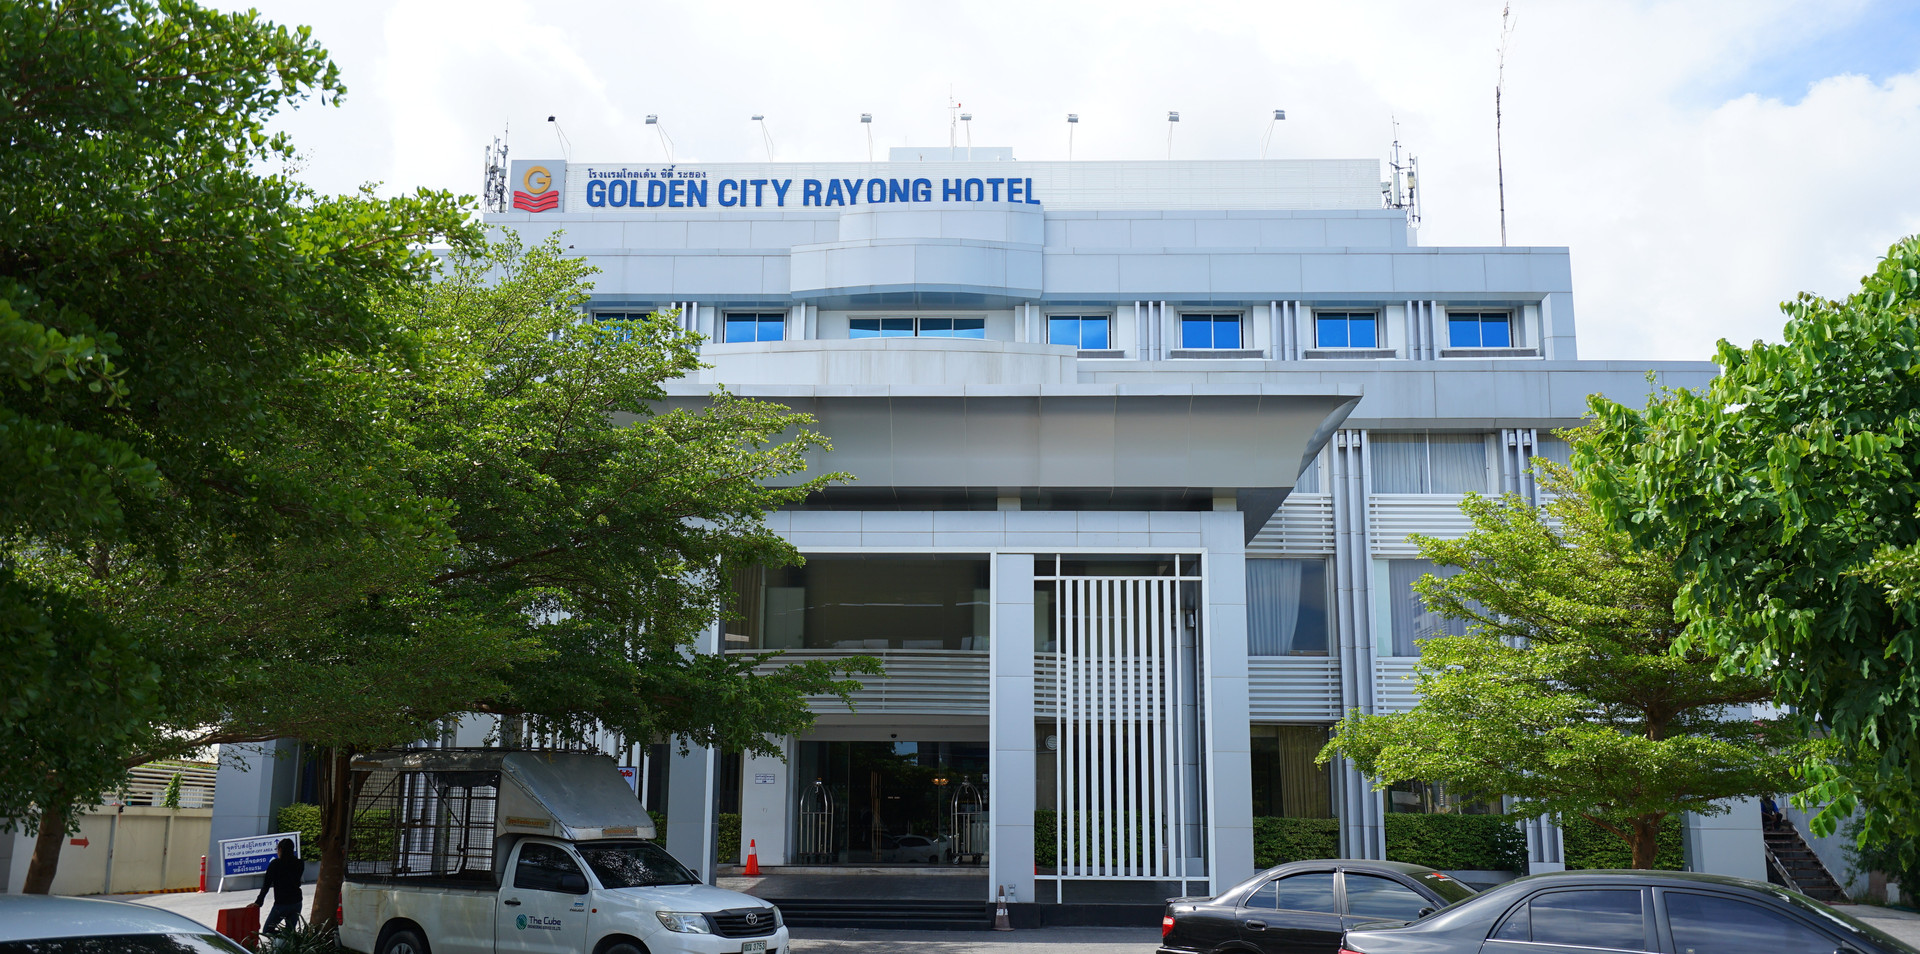 Rayong City Hotel Project